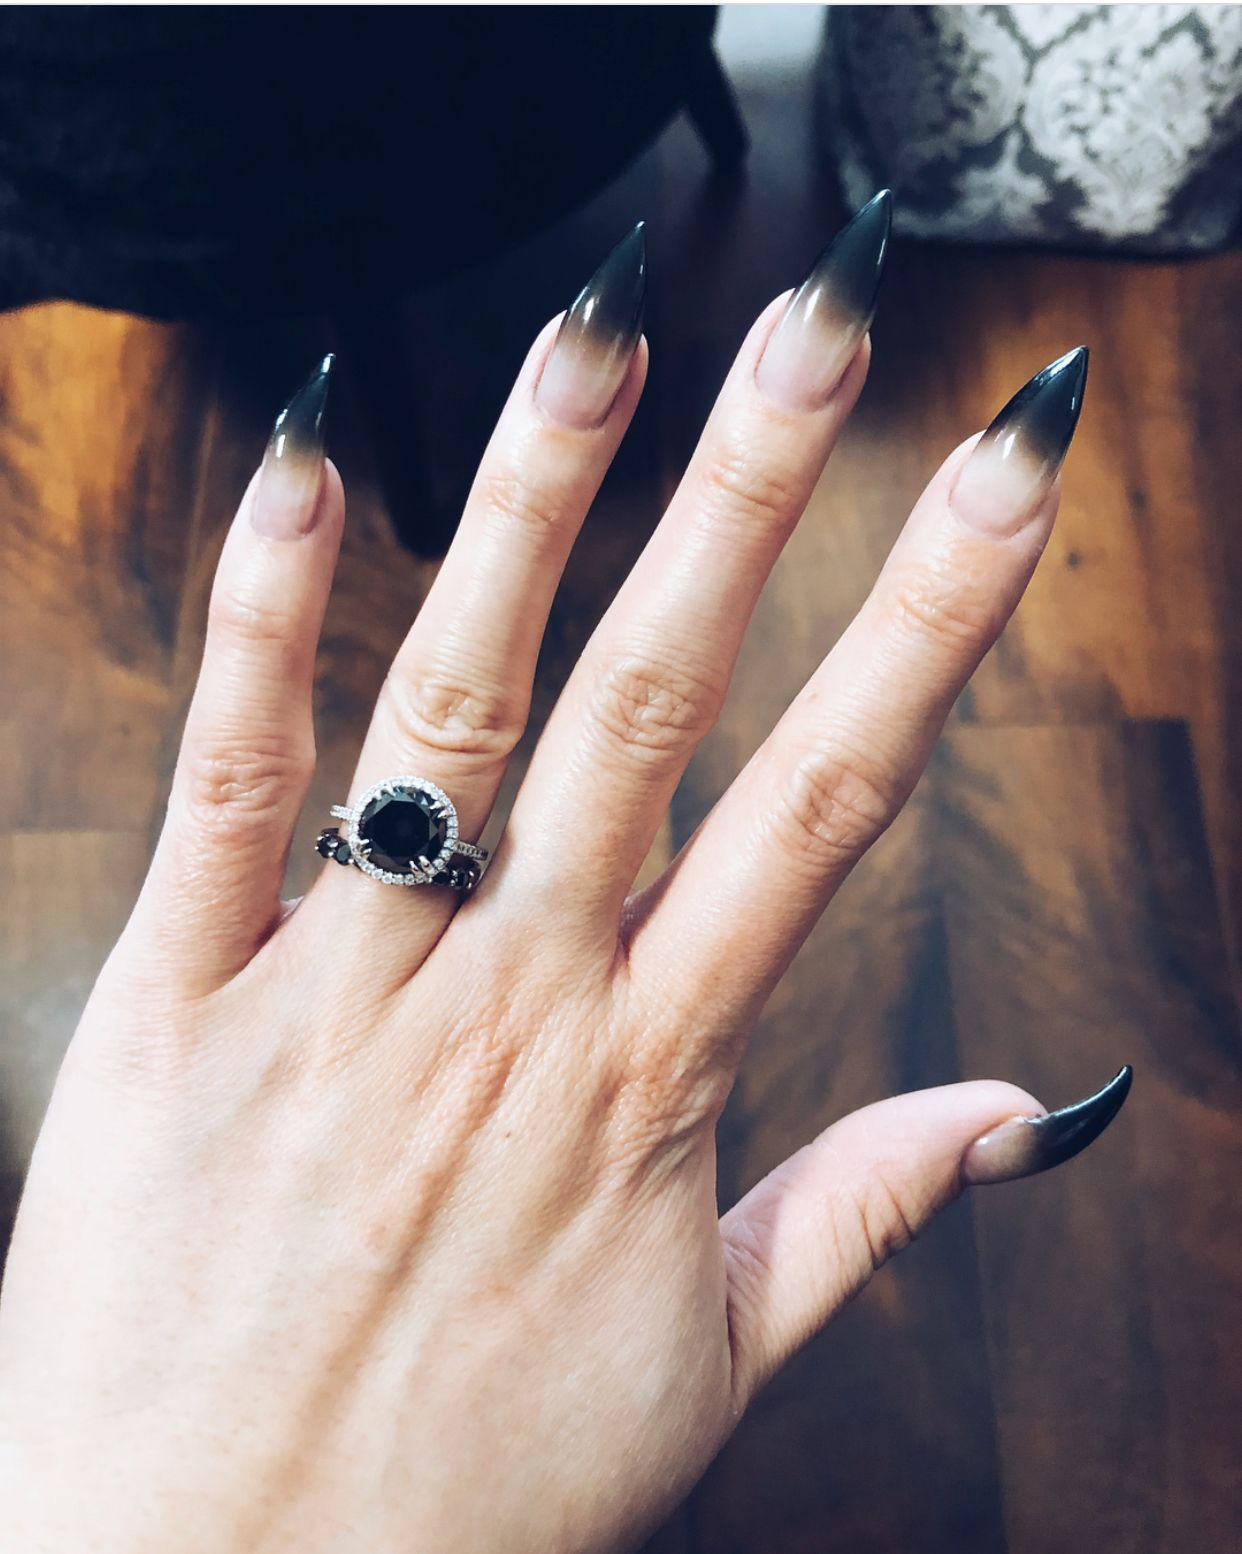 Nail Art With Images Black Ombre Nails Claw Nails Designs